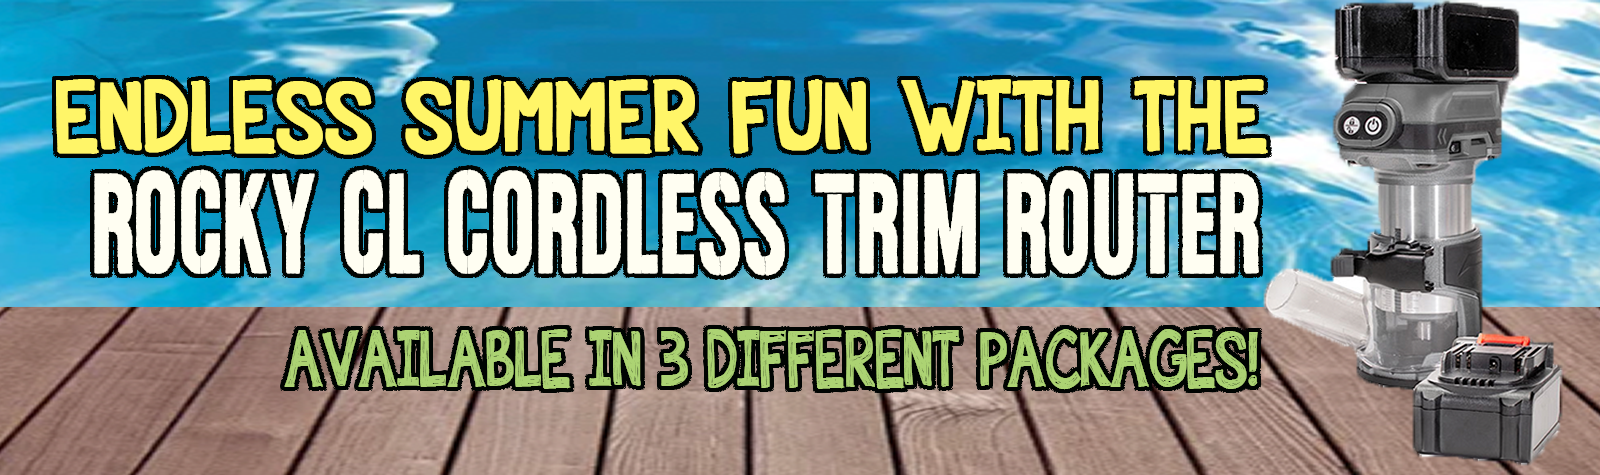 Endless Summer fun with the Cordless Rocky